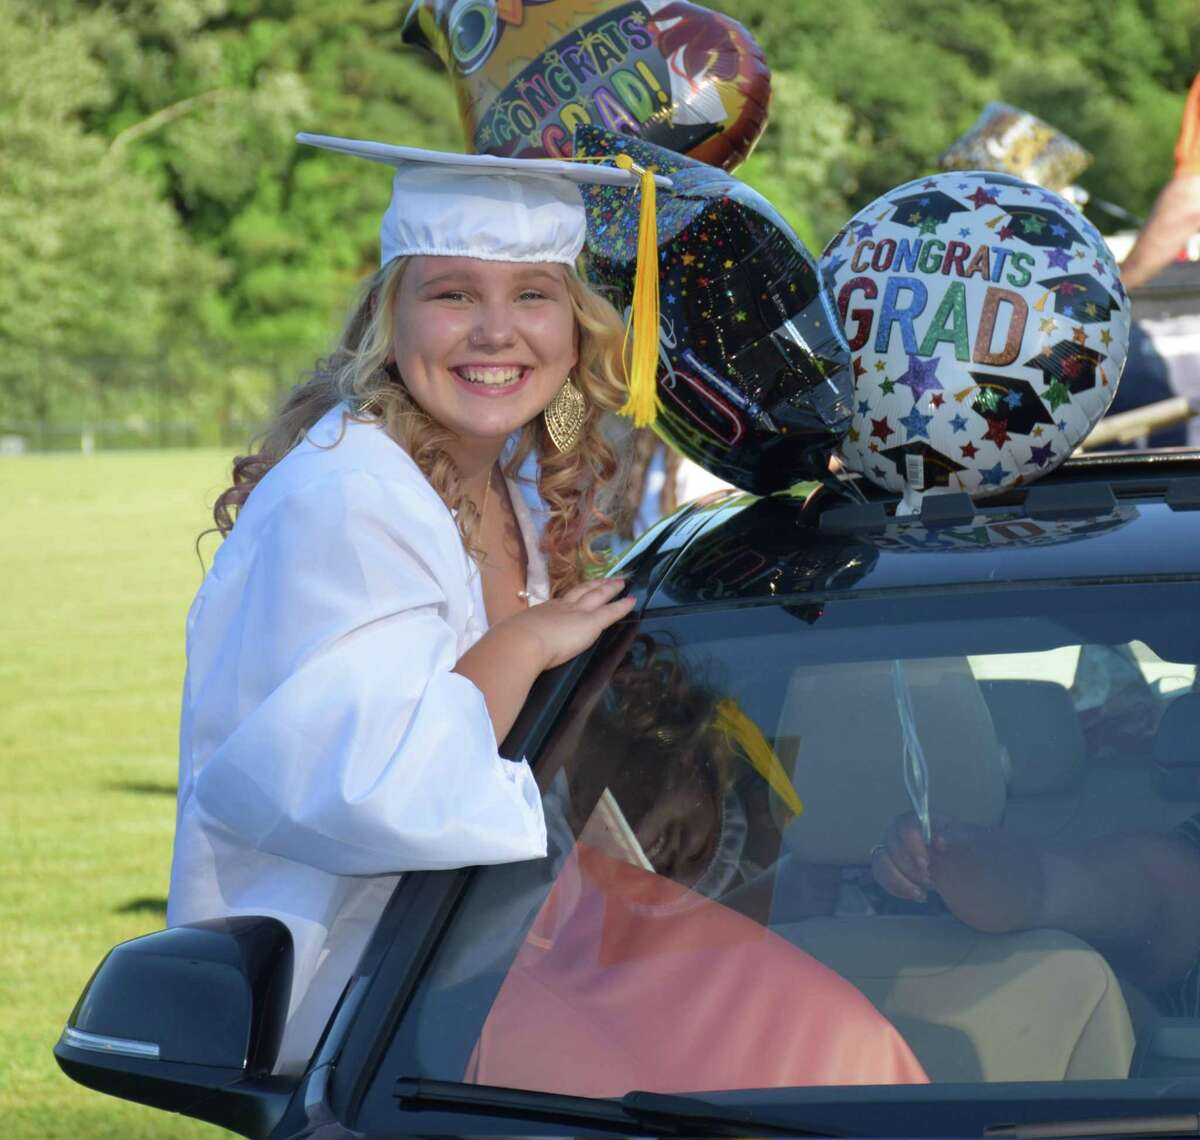 Sherman School held its eighth-grade graduation ceremony Saturday at Veterans Field. Students and their families arrived in a vehicle and parked in designated spots in the the field, where a ceremony was held adhering to social distancing guidelines. The majority of the cars were decorated. Above, Tijana Kanacki proudly awaits the start of the ceremony, joining fellow graduates by taking a creative seat in a vehicle. For more photographs, see Page S9.